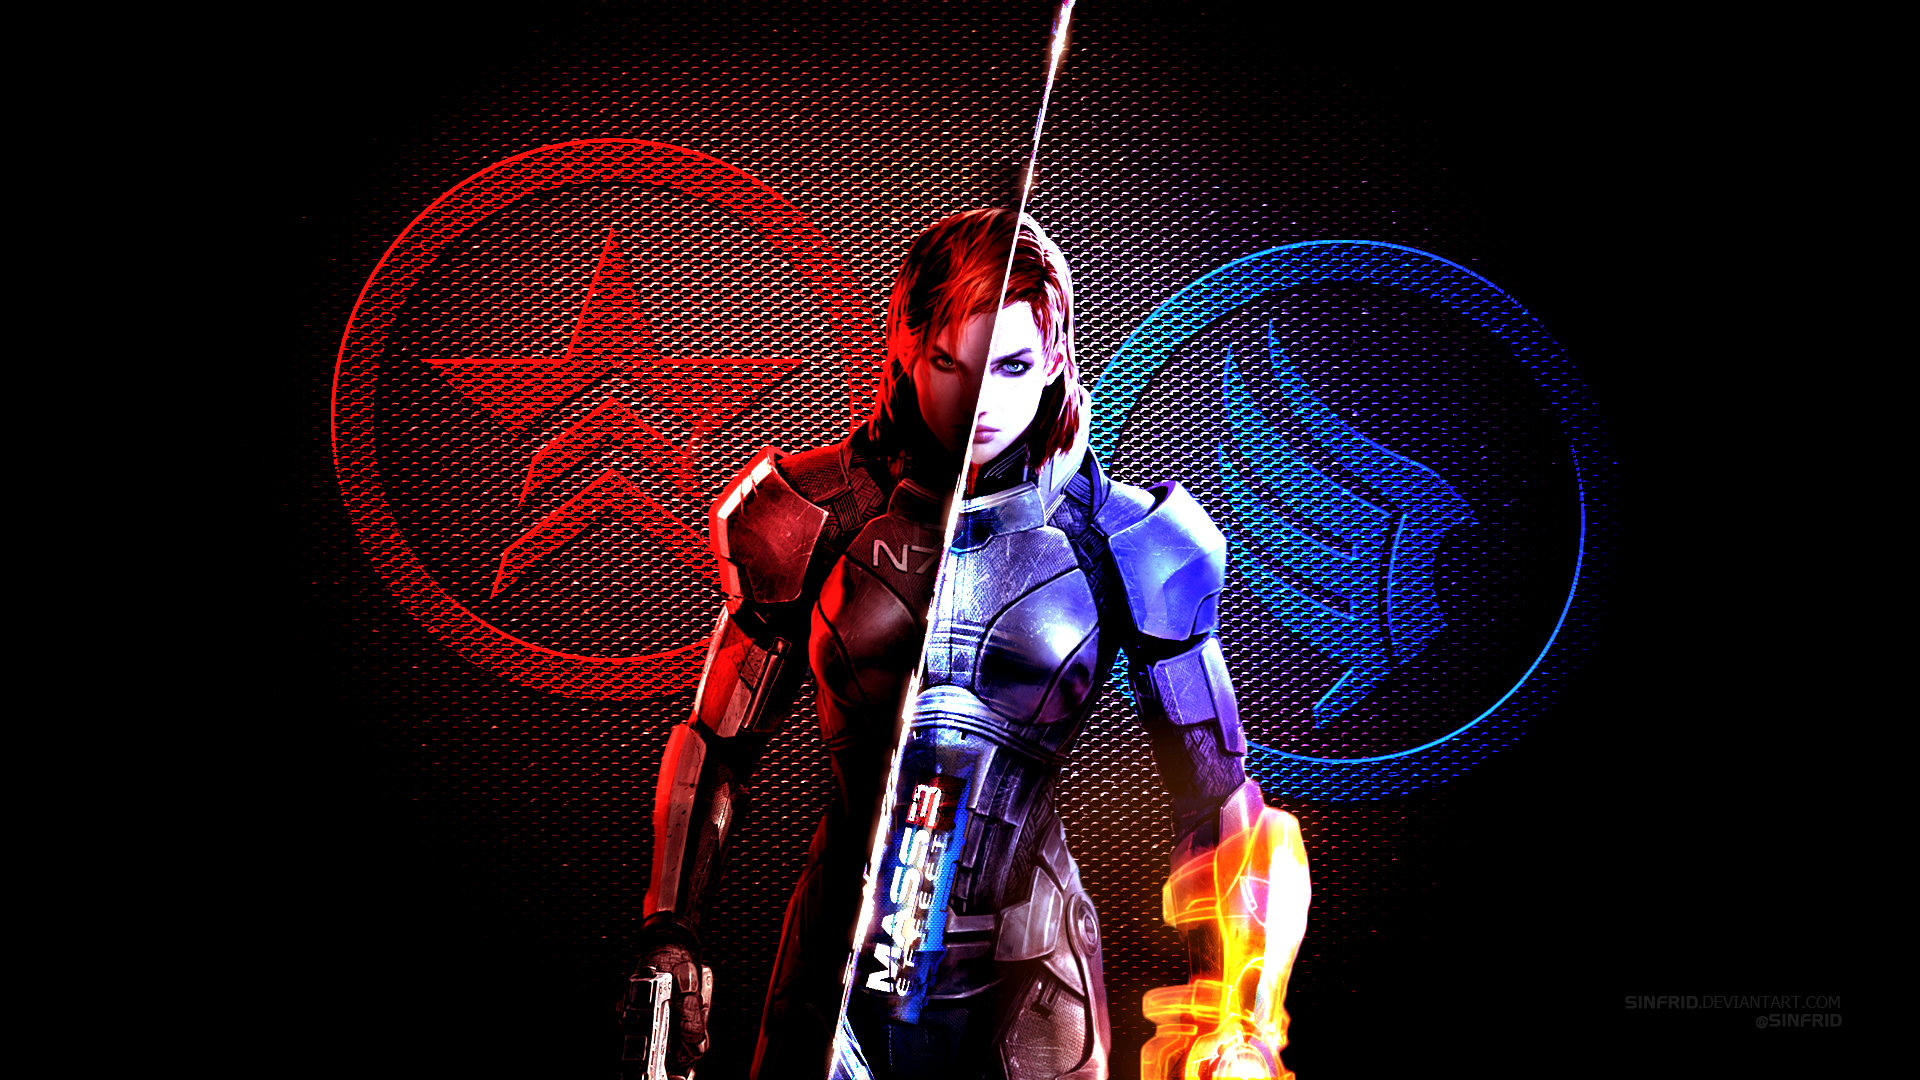 Mass Effect 3 Wallpaper 02 By Sinfrid On Deviantart